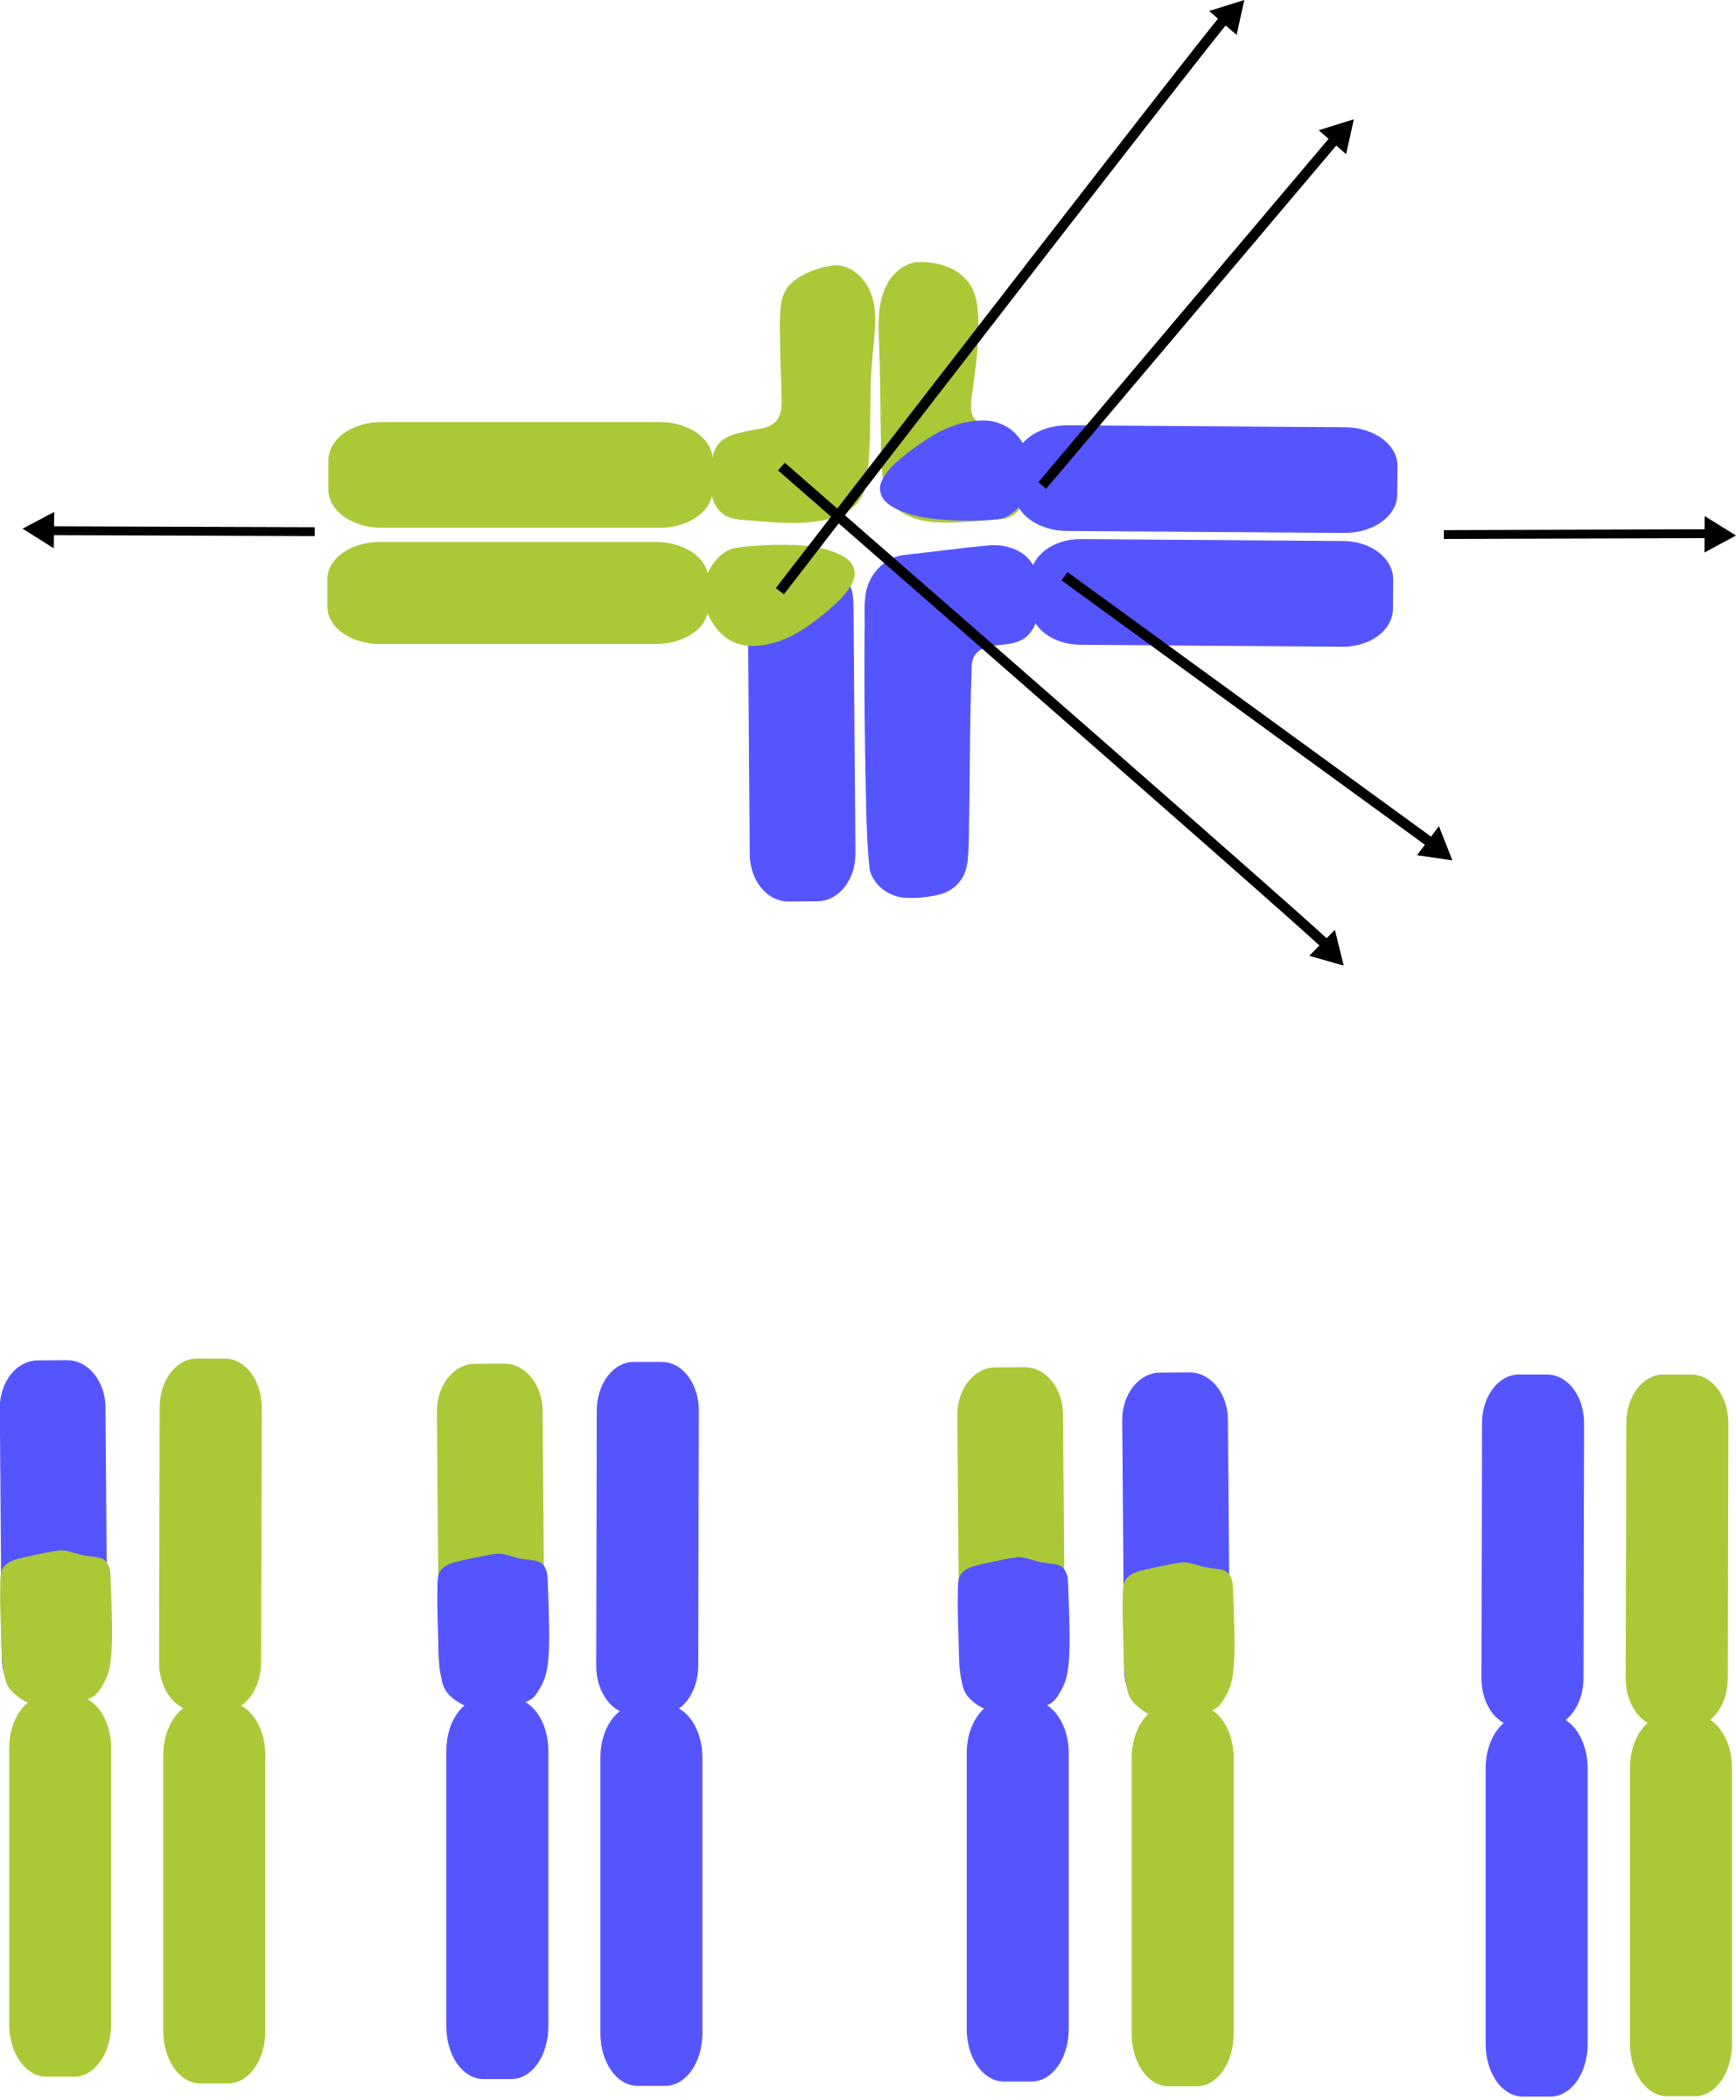 Translocated Chromosomes by JS